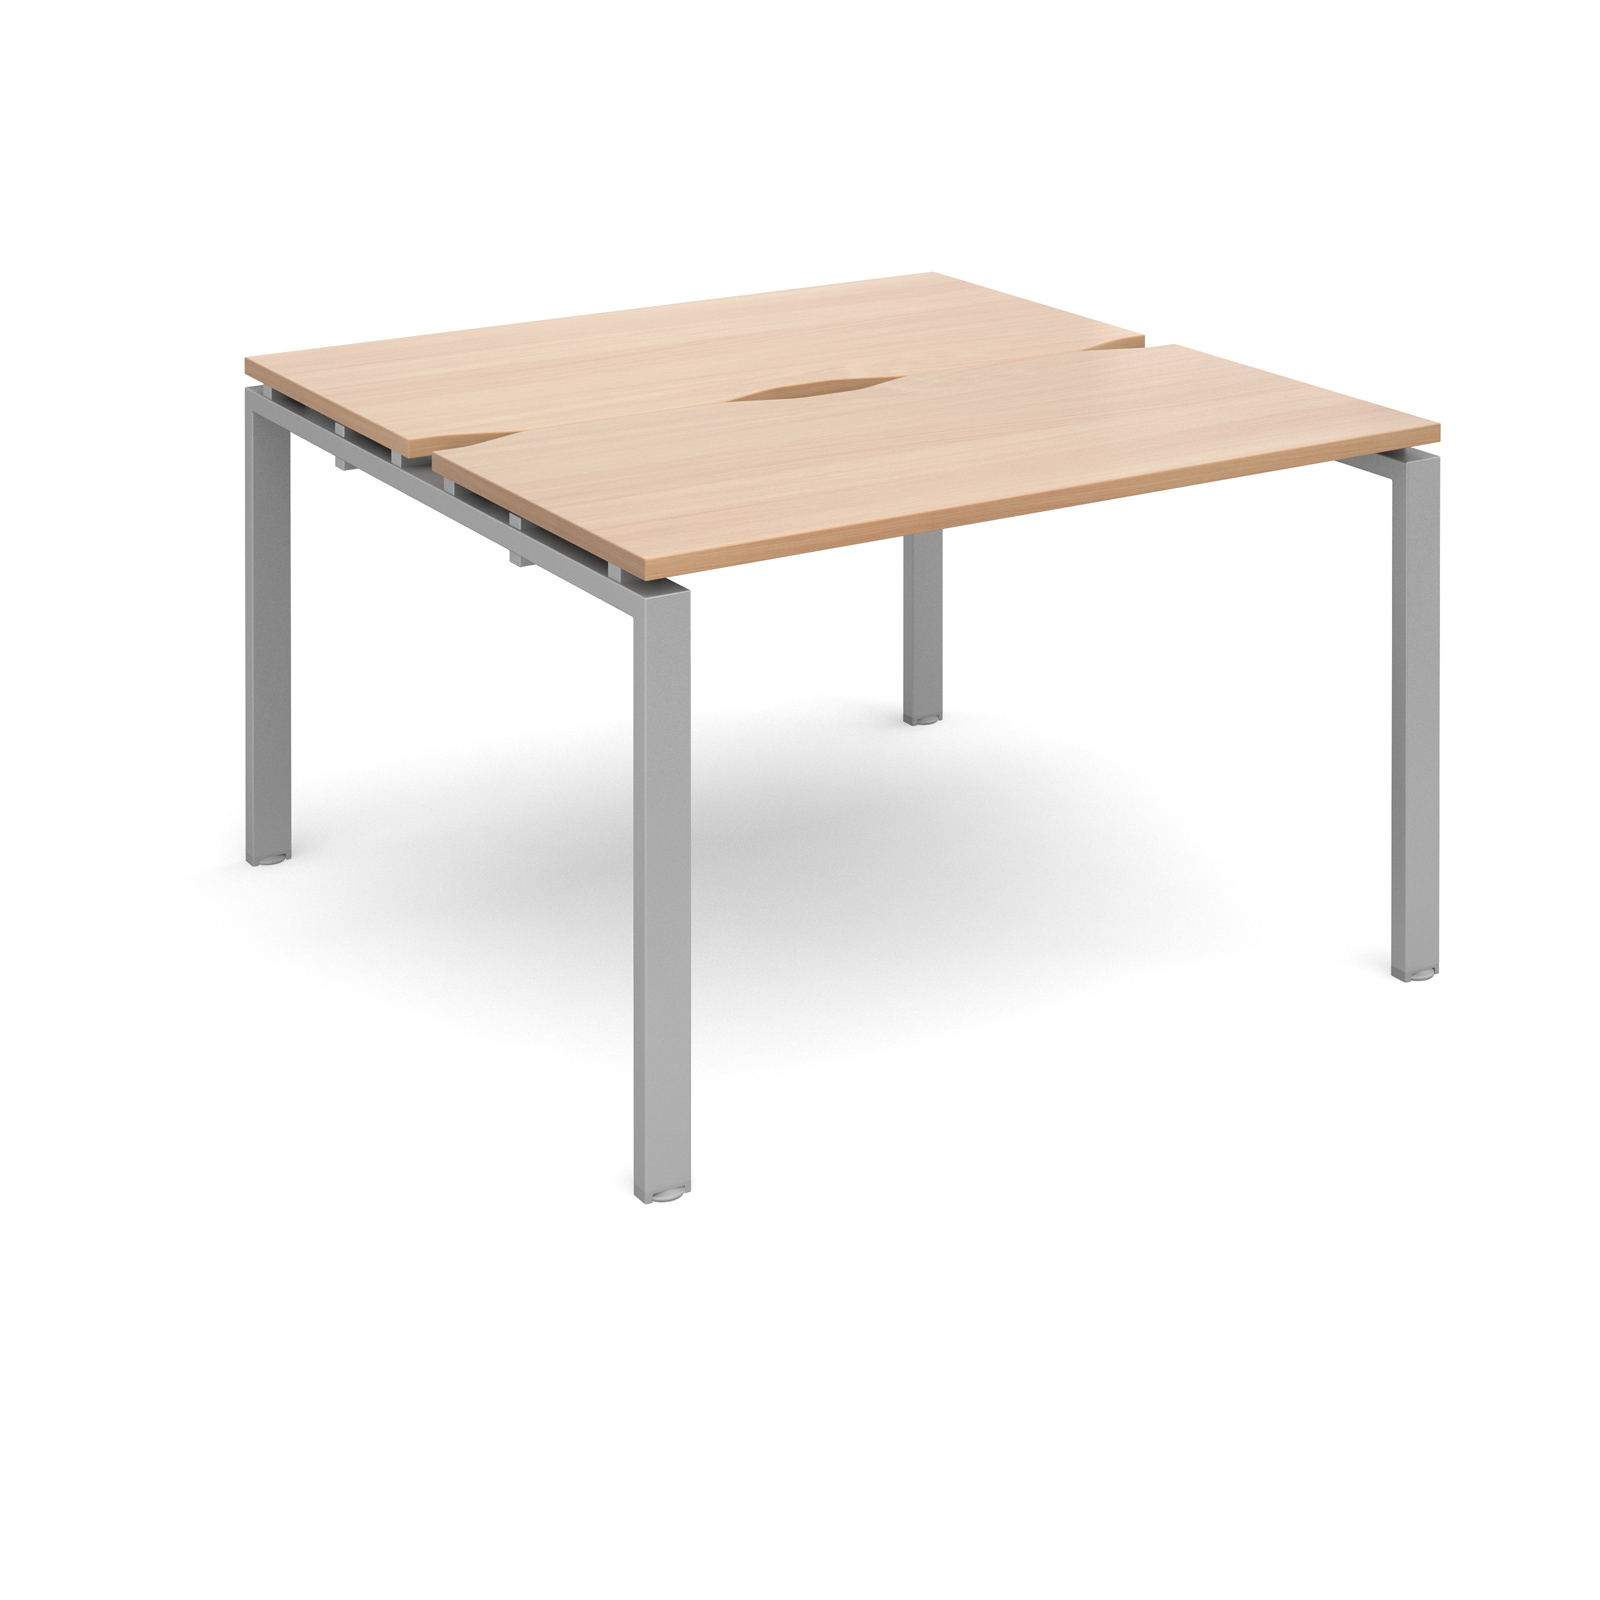 Adapt II 1200 x 1200 x 725mm Back to Back Desk - Beech / Silver Leg